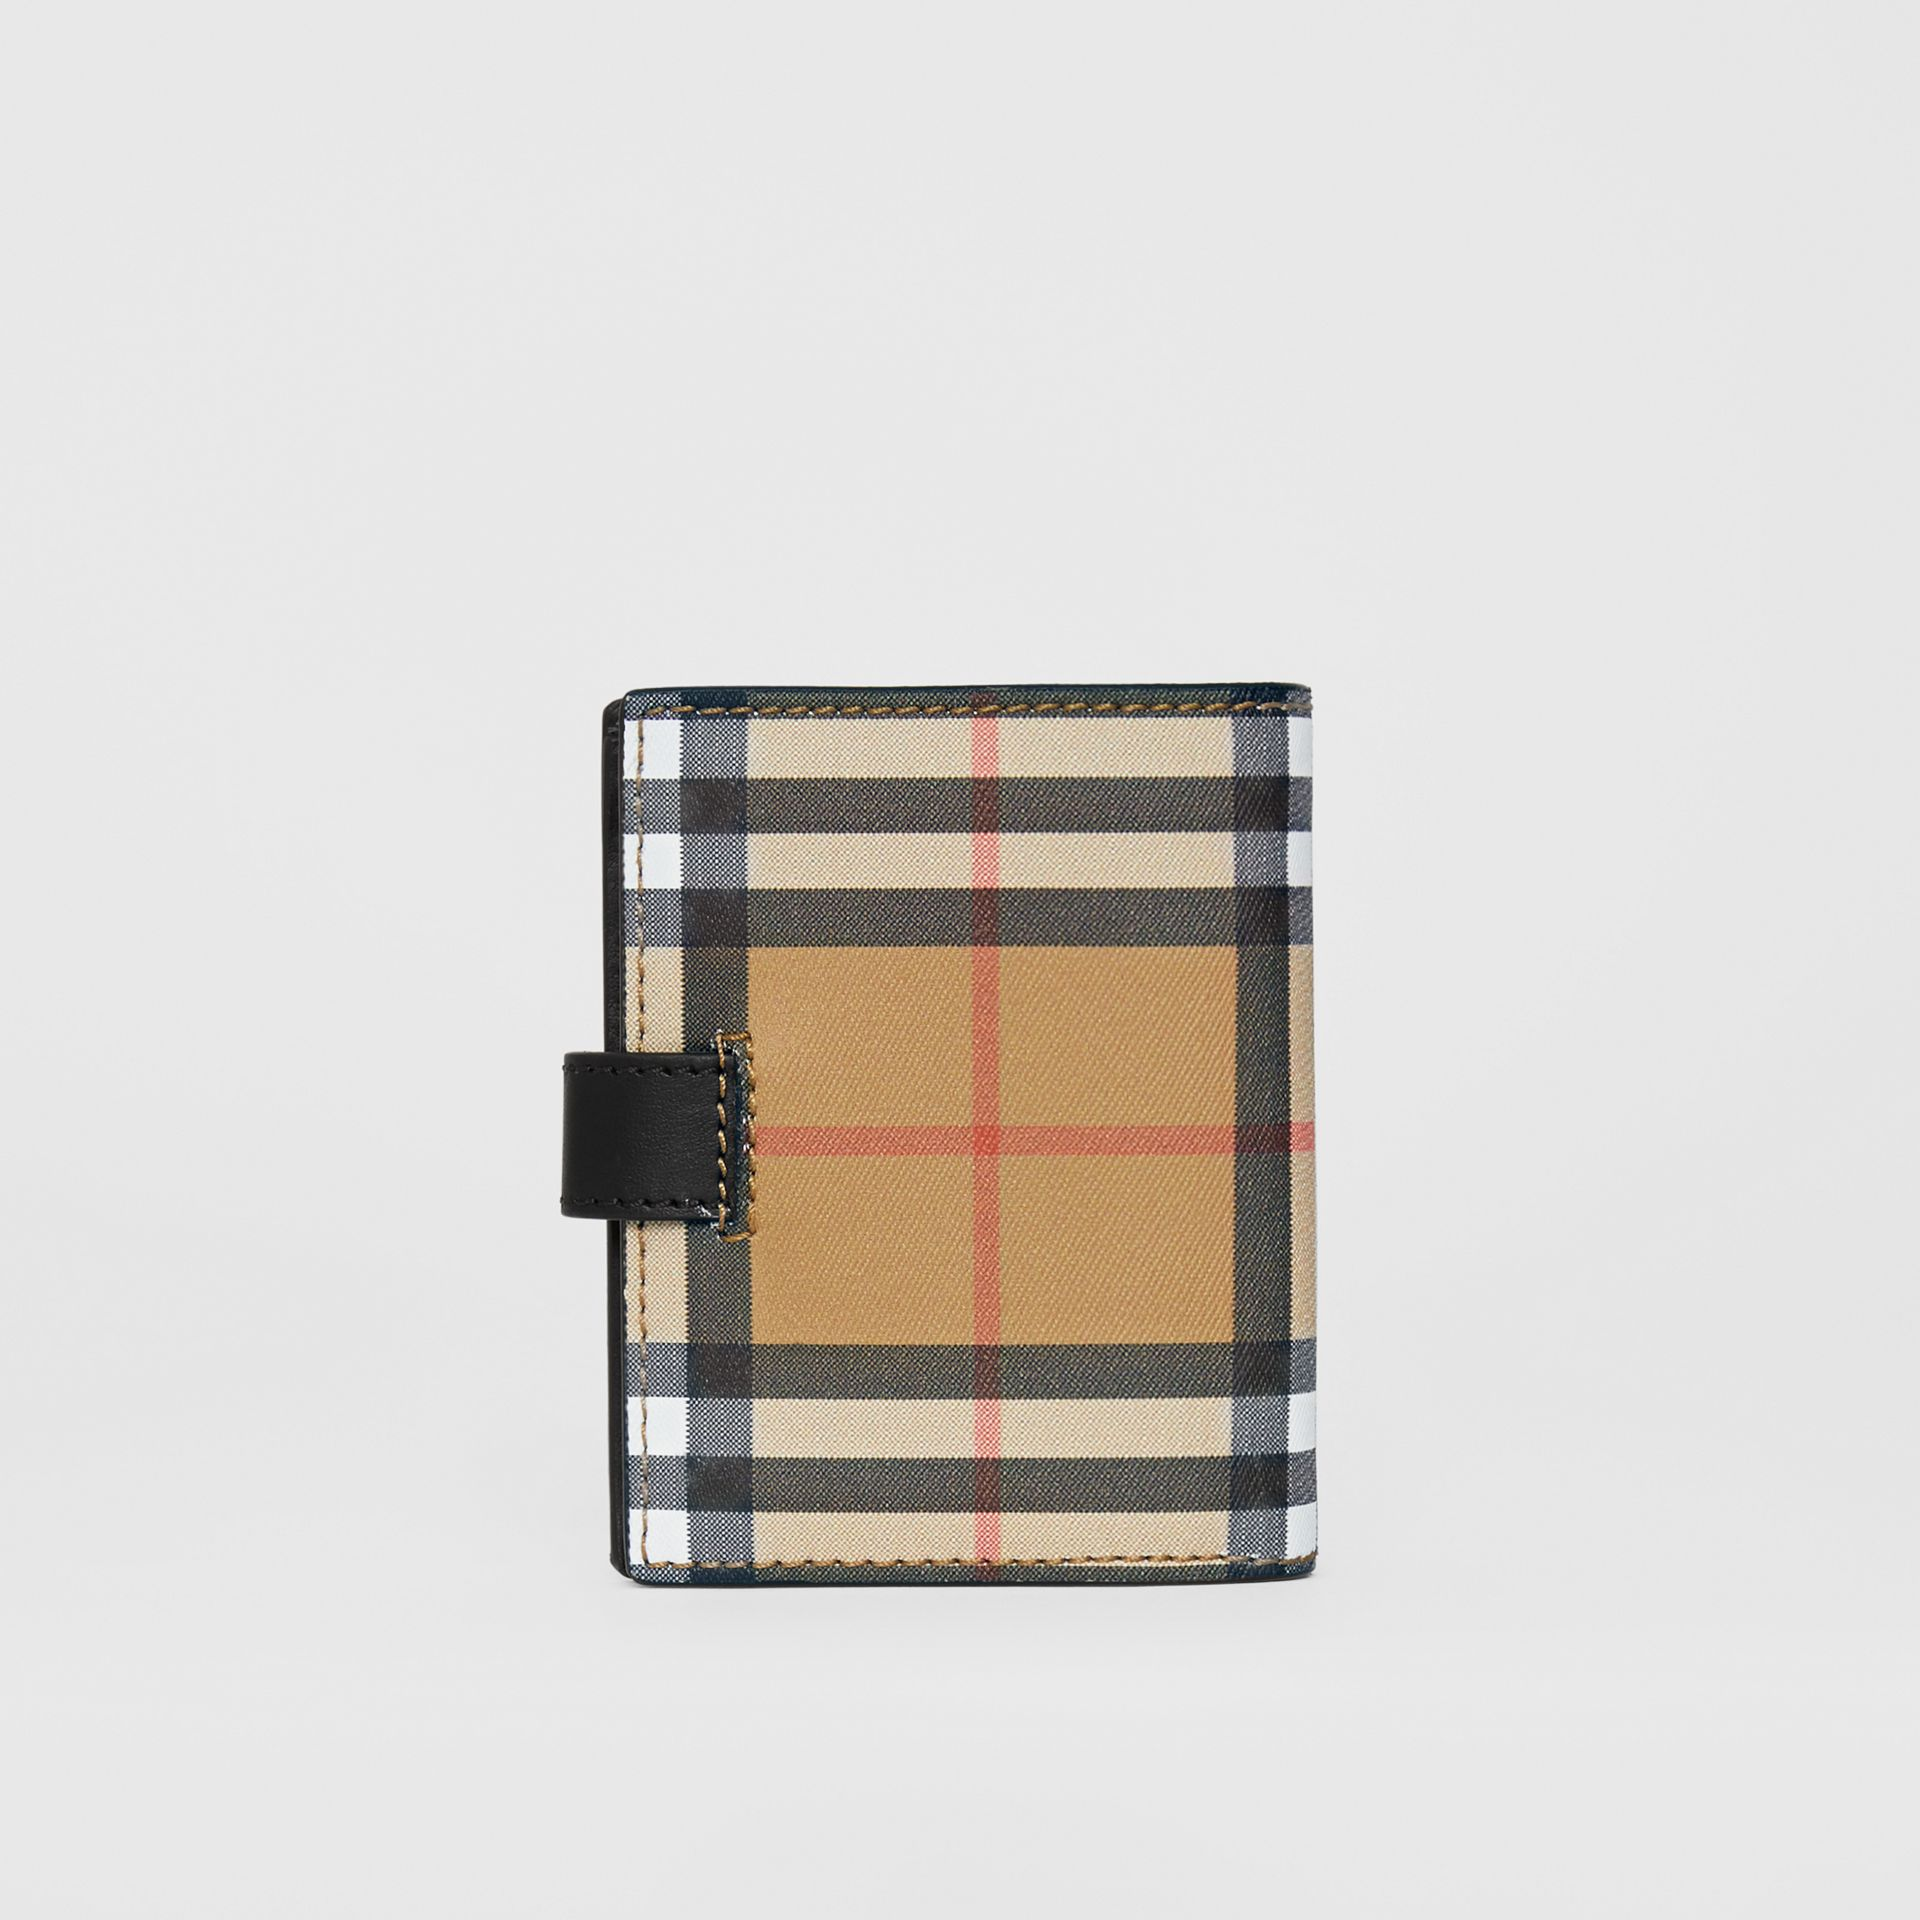 Small Vintage Check and Leather Folding Wallet in Black - Women | Burberry - gallery image 2